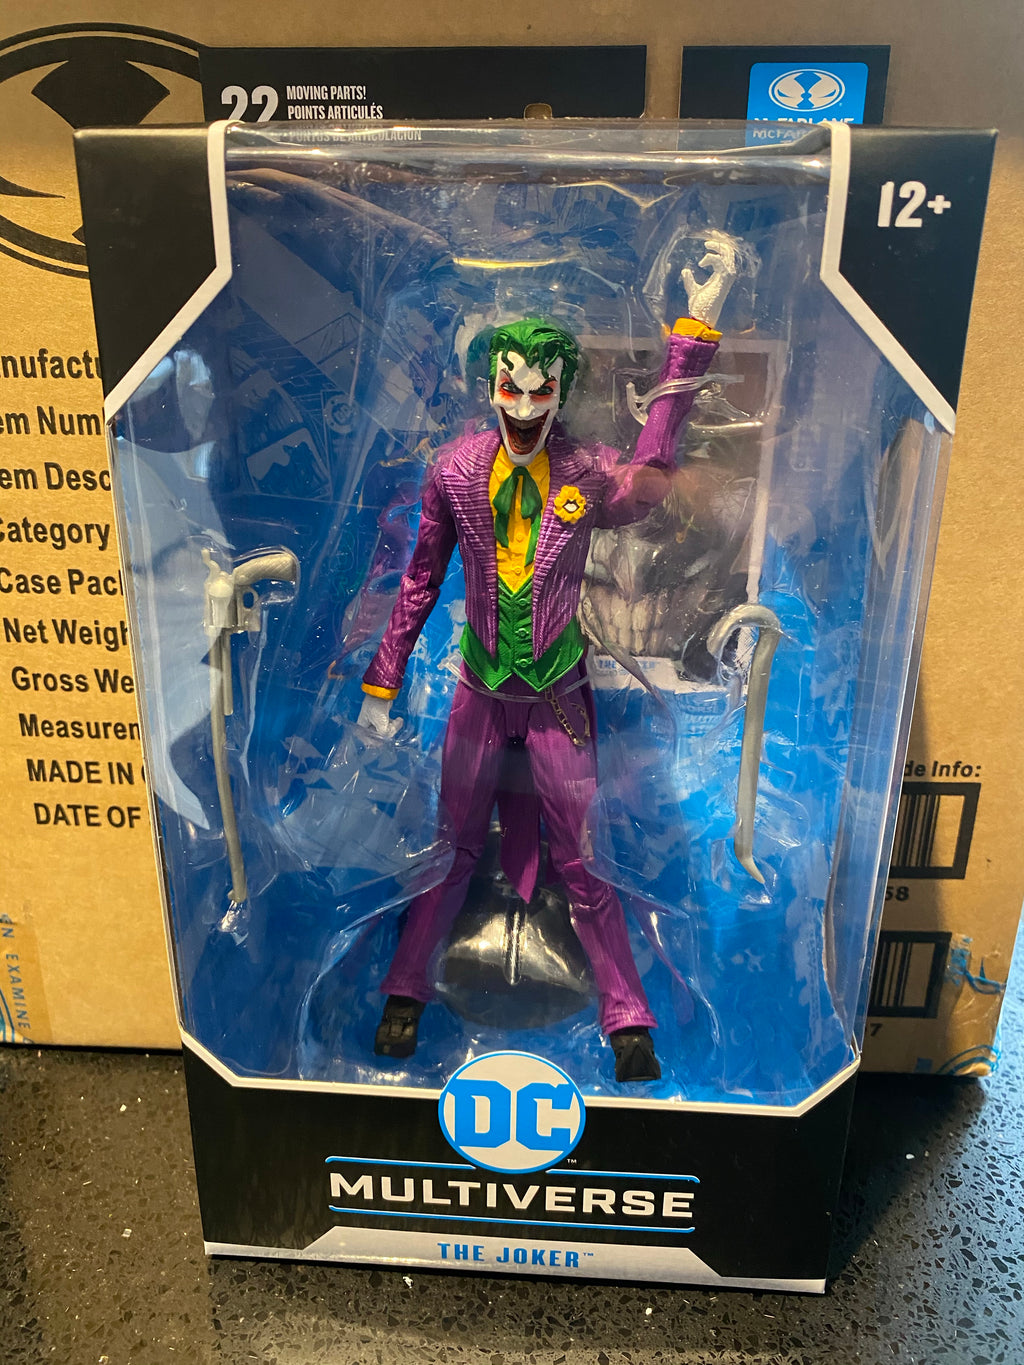 McFarlane DC Multiverse The Joker